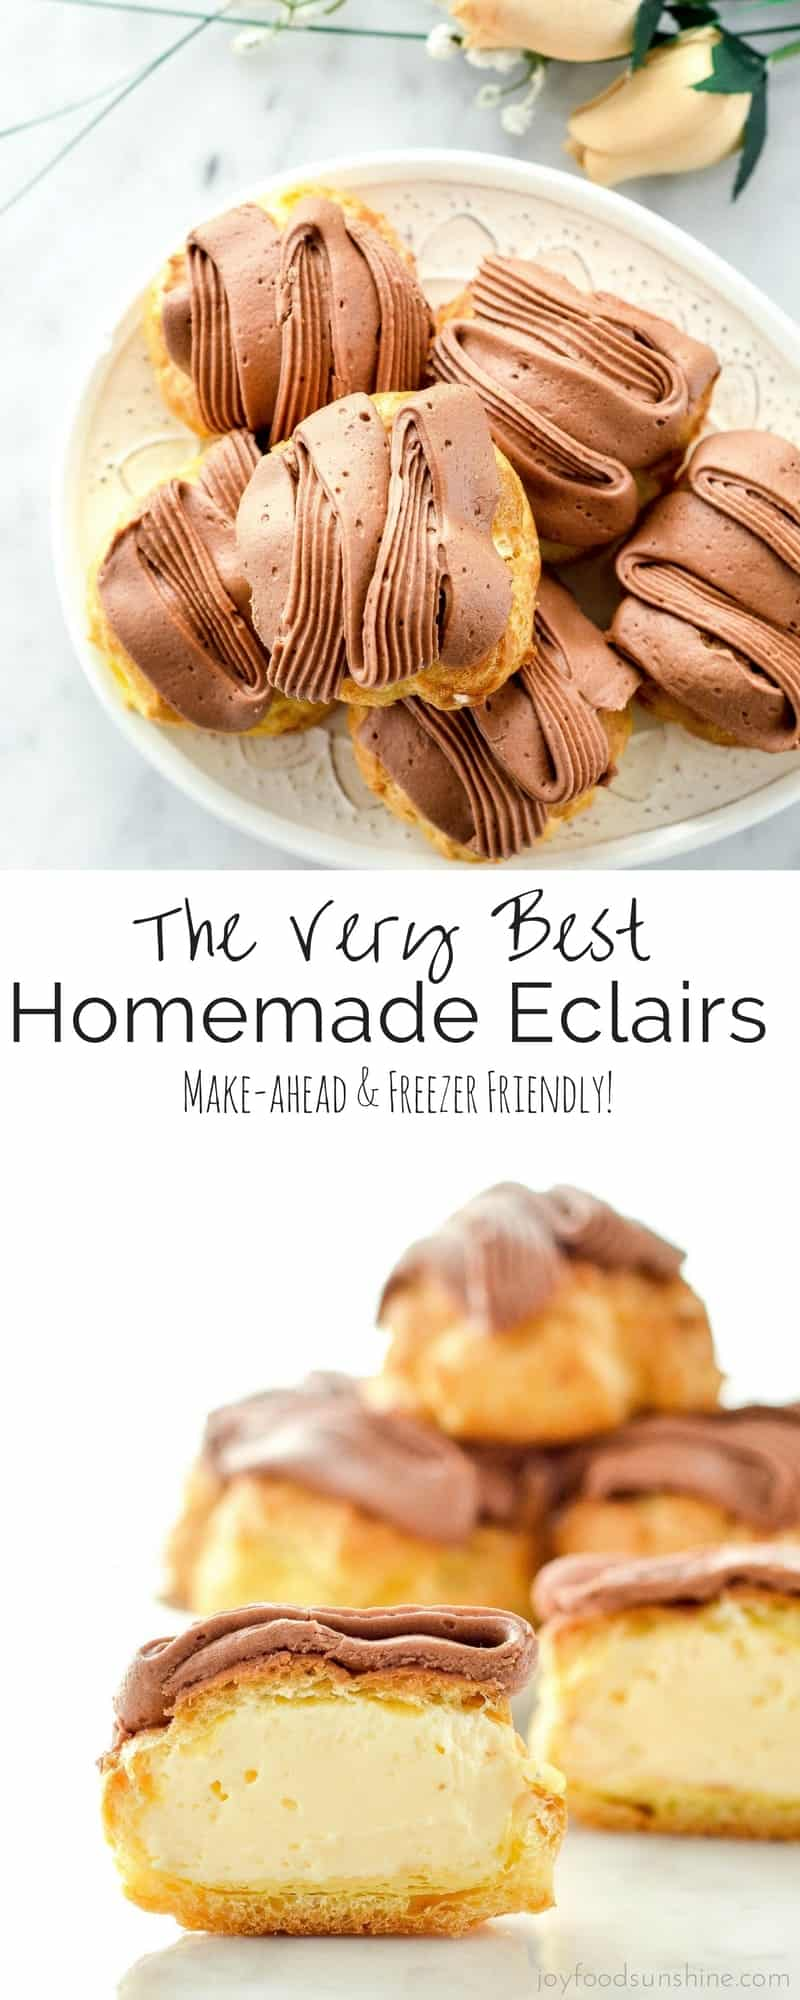 The very best Homemade Eclairs ever! A labor of love resulting in a delicious, elegant dessert that is perfect for any special occasion! Make-ahead and freezer-friendly!